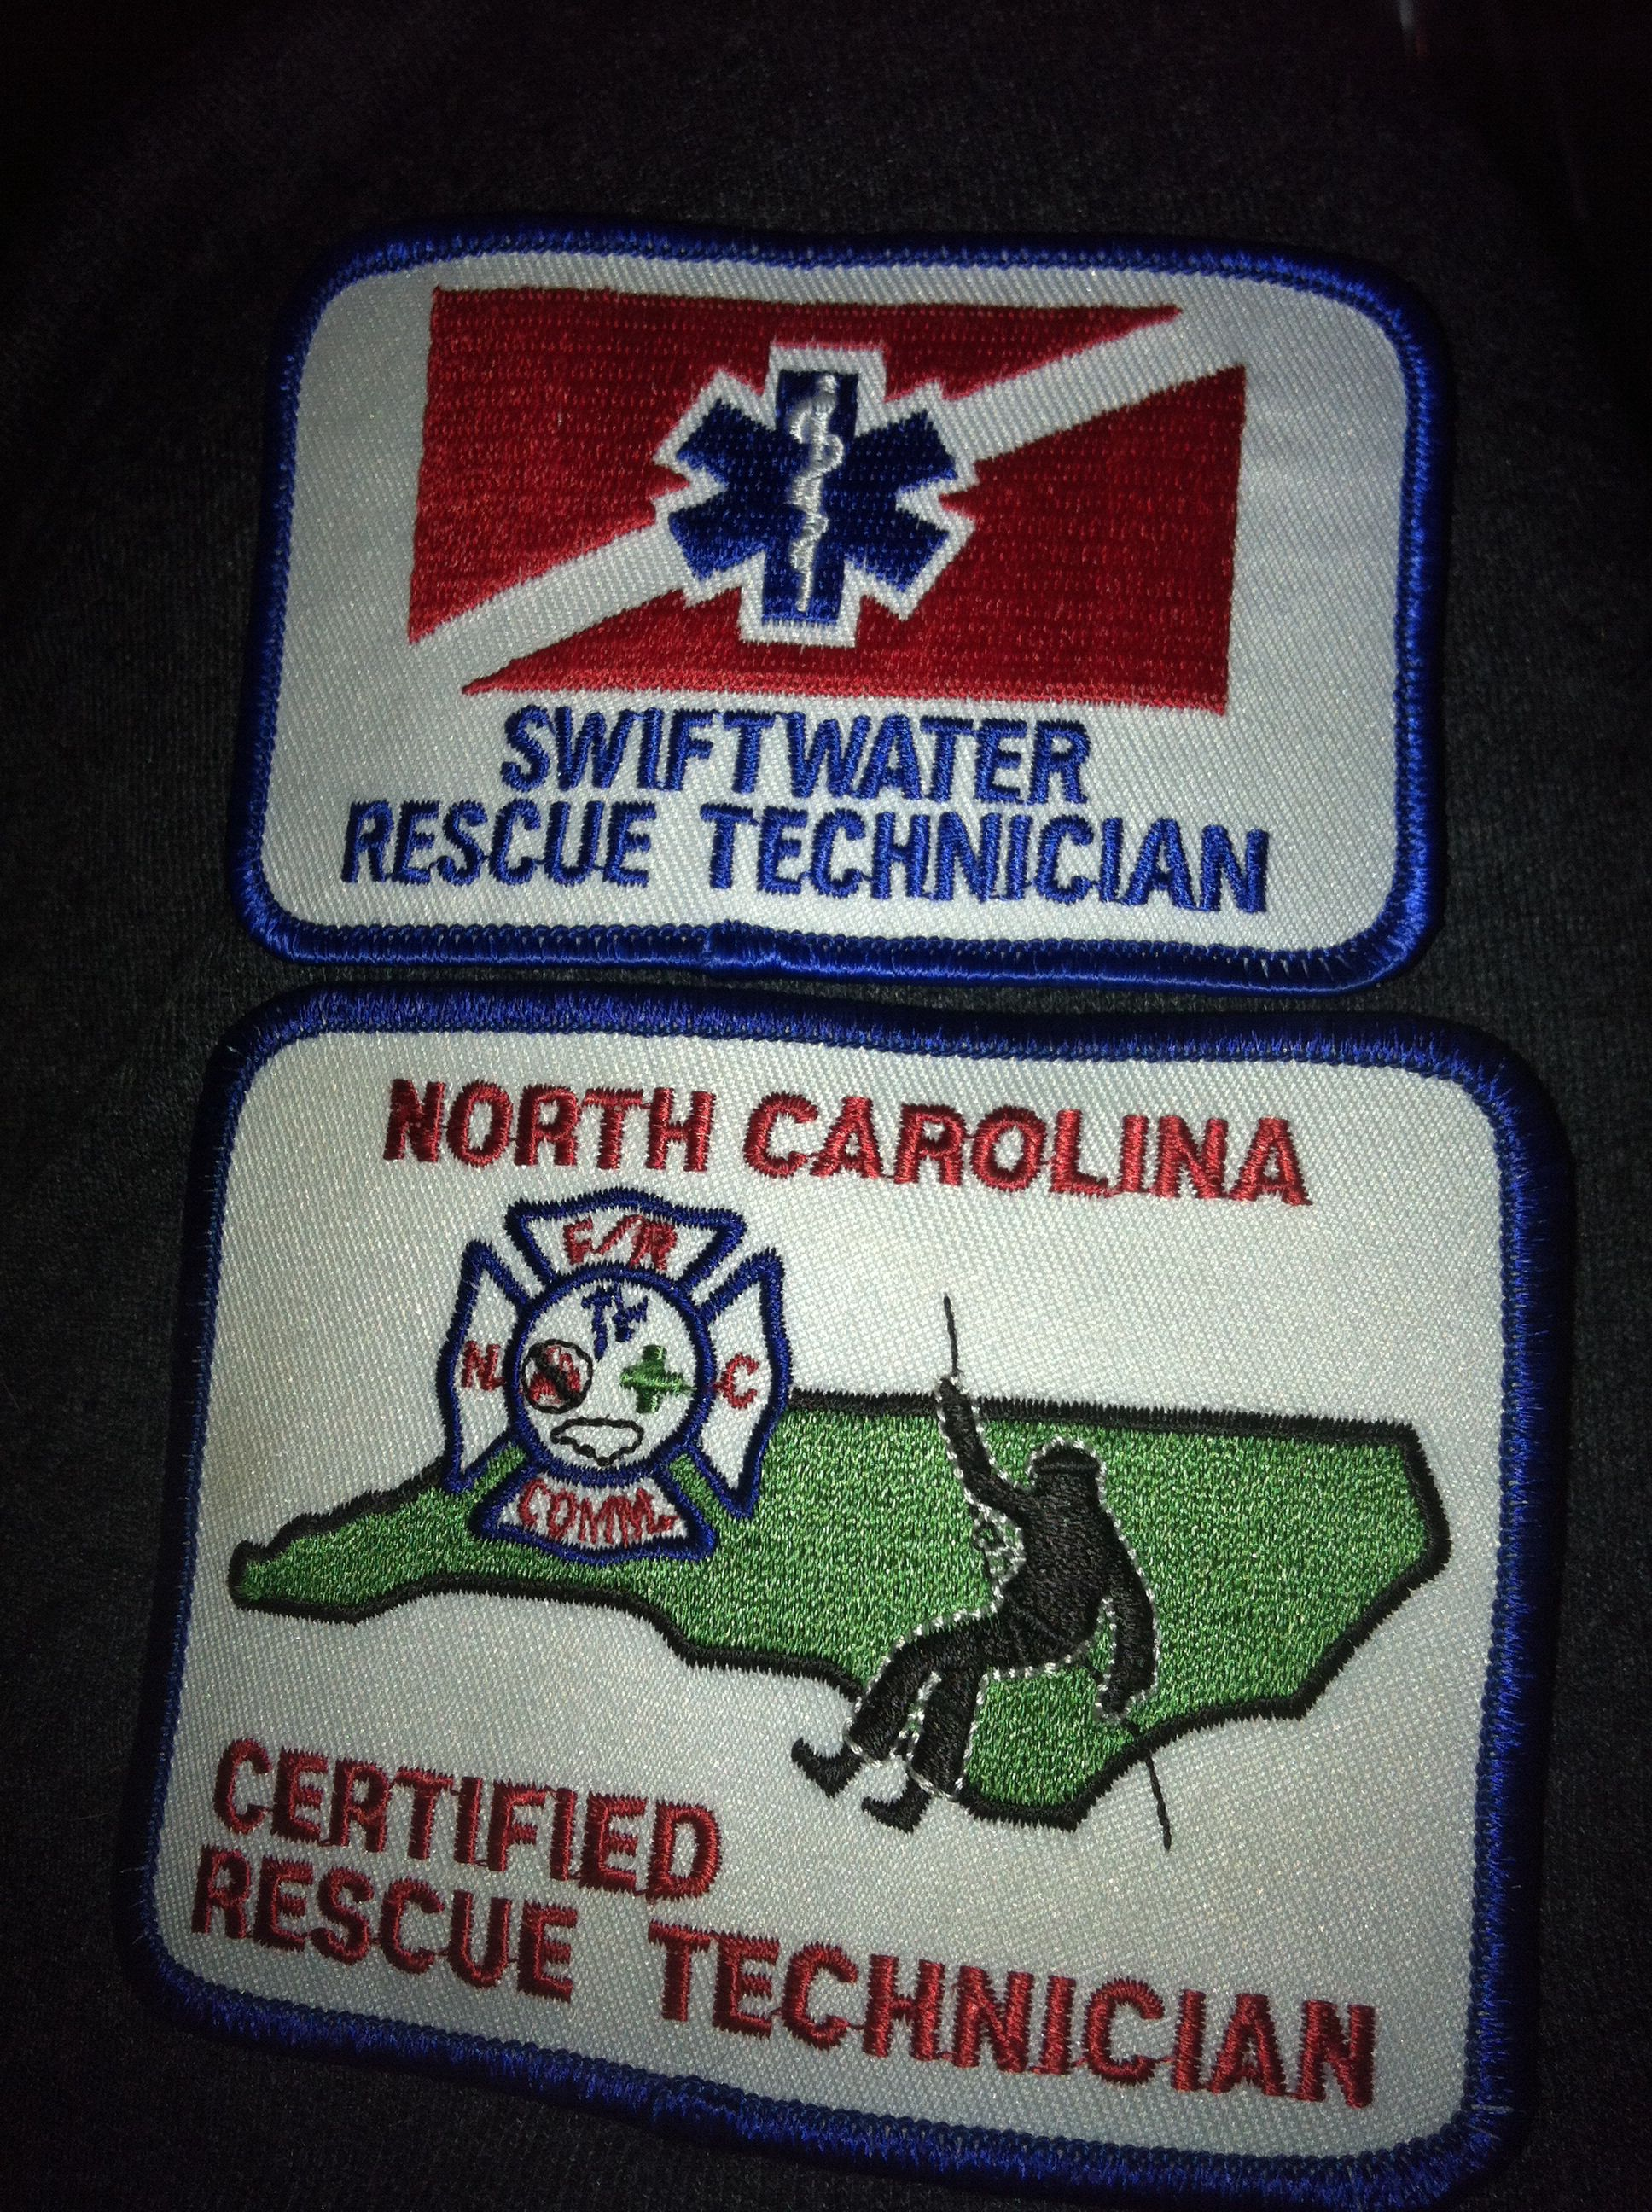 Couple of certification patches